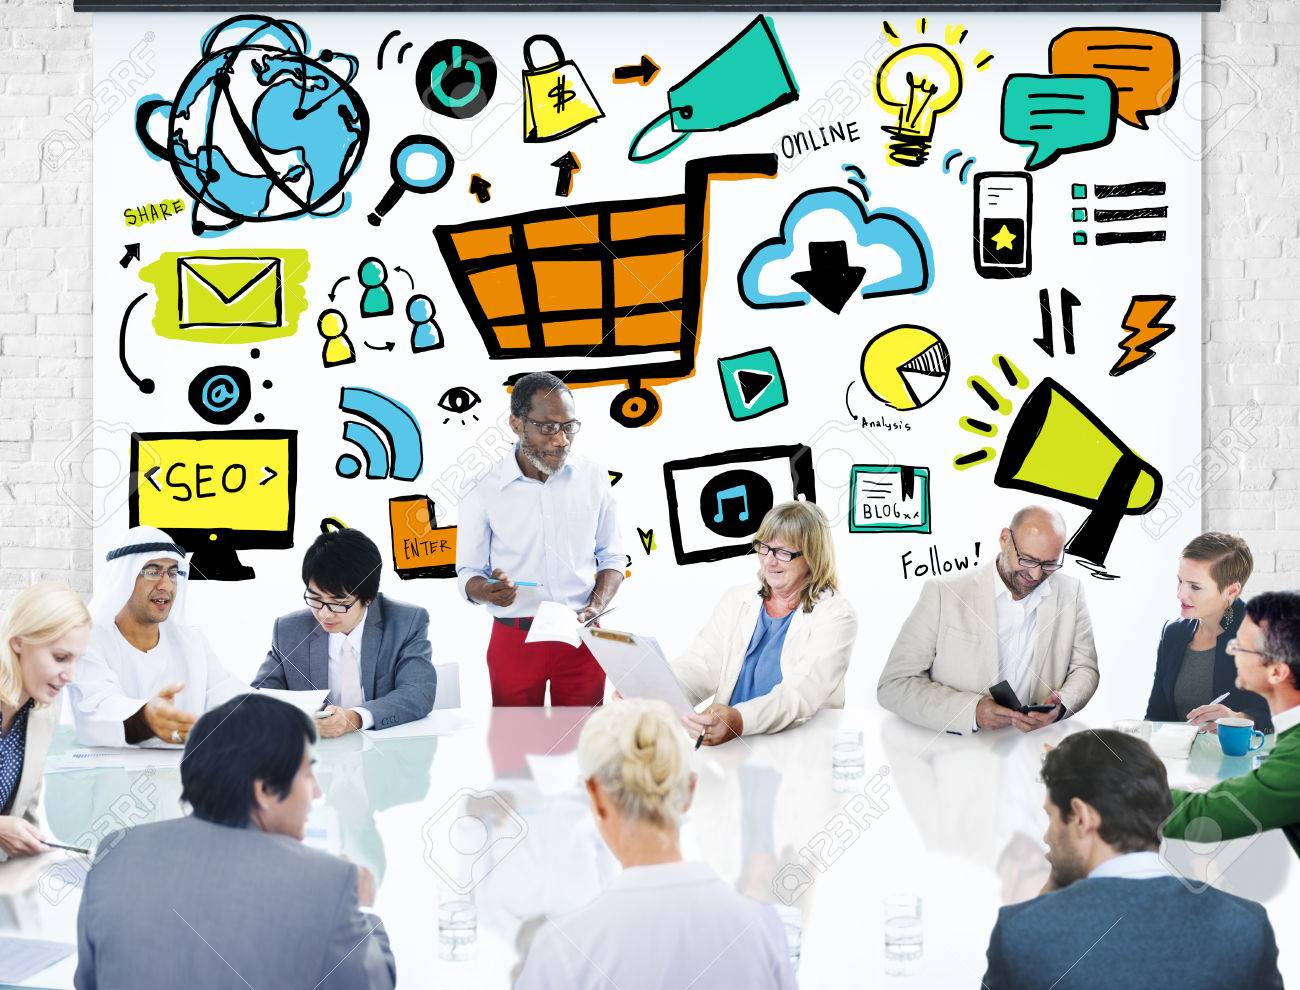 Image result for free images of people in marketing meeting